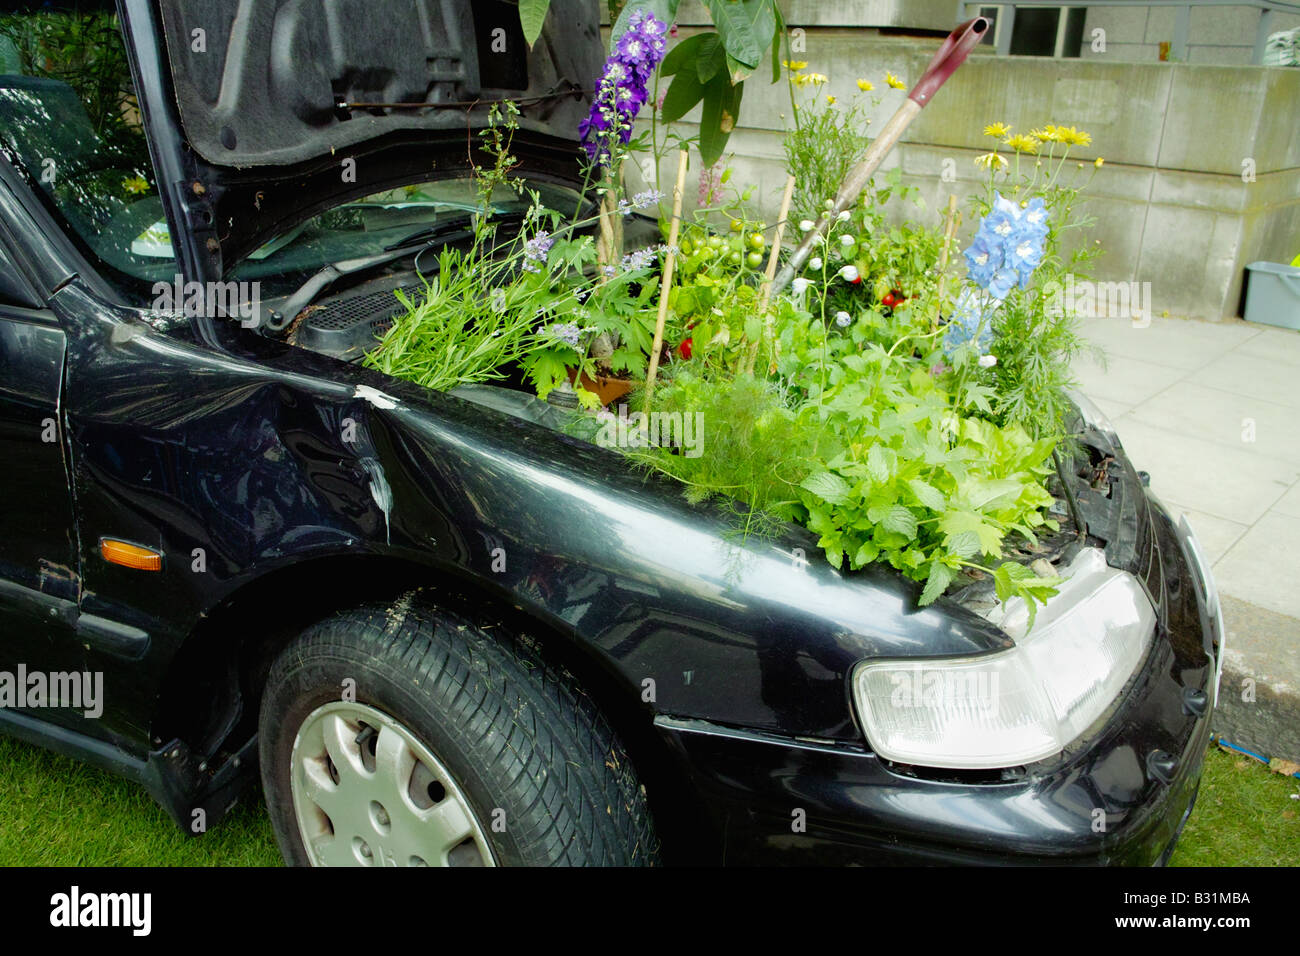 clean green environmentally friendly car vehicle transport with plants in engine bay - Stock Image